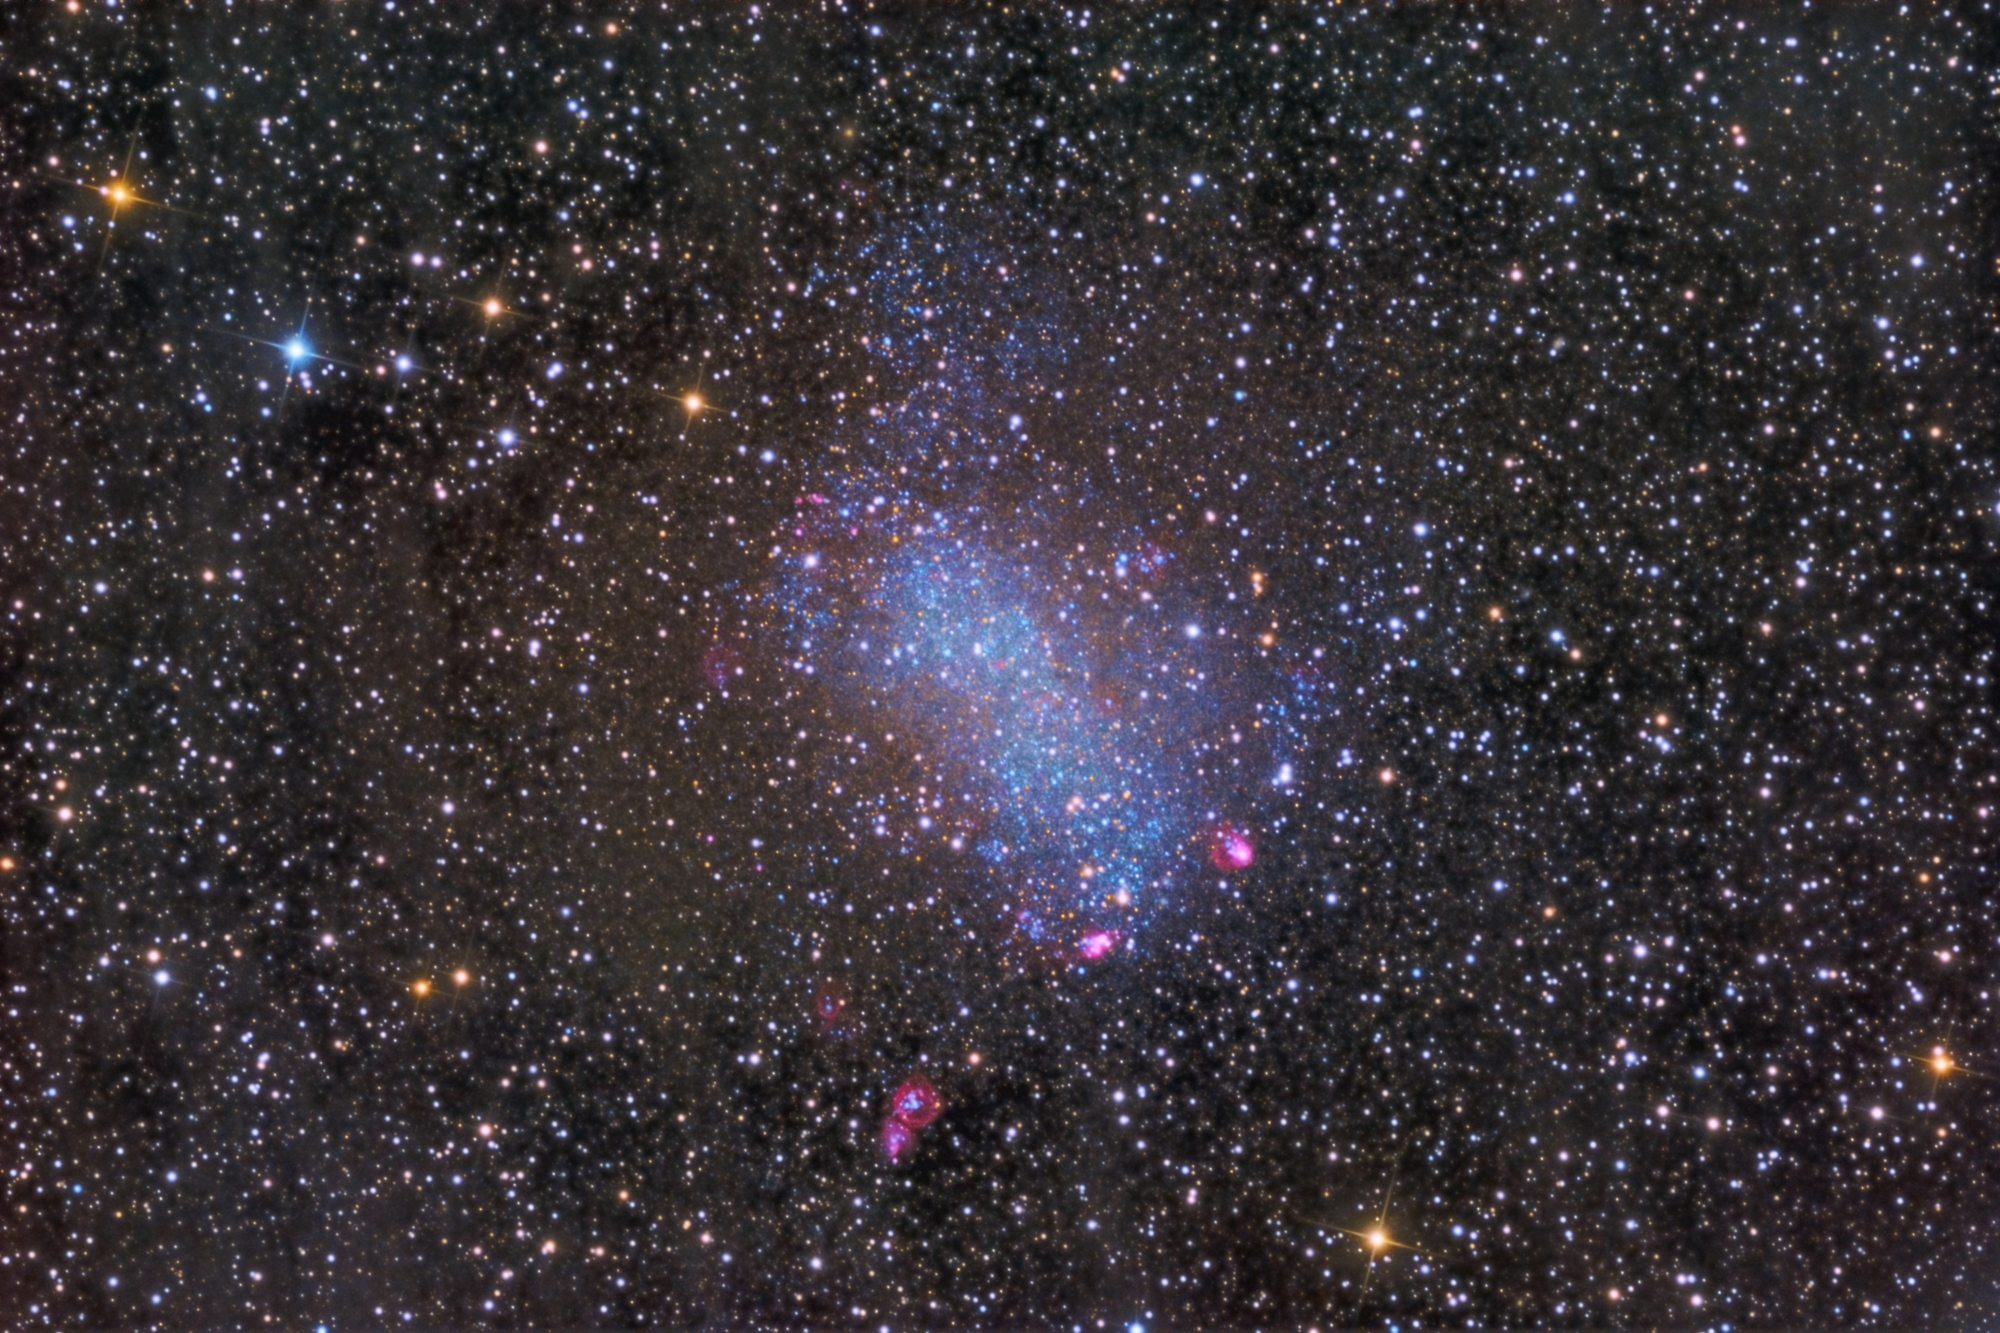 sagittarius dwarf galaxy nasa - photo #19